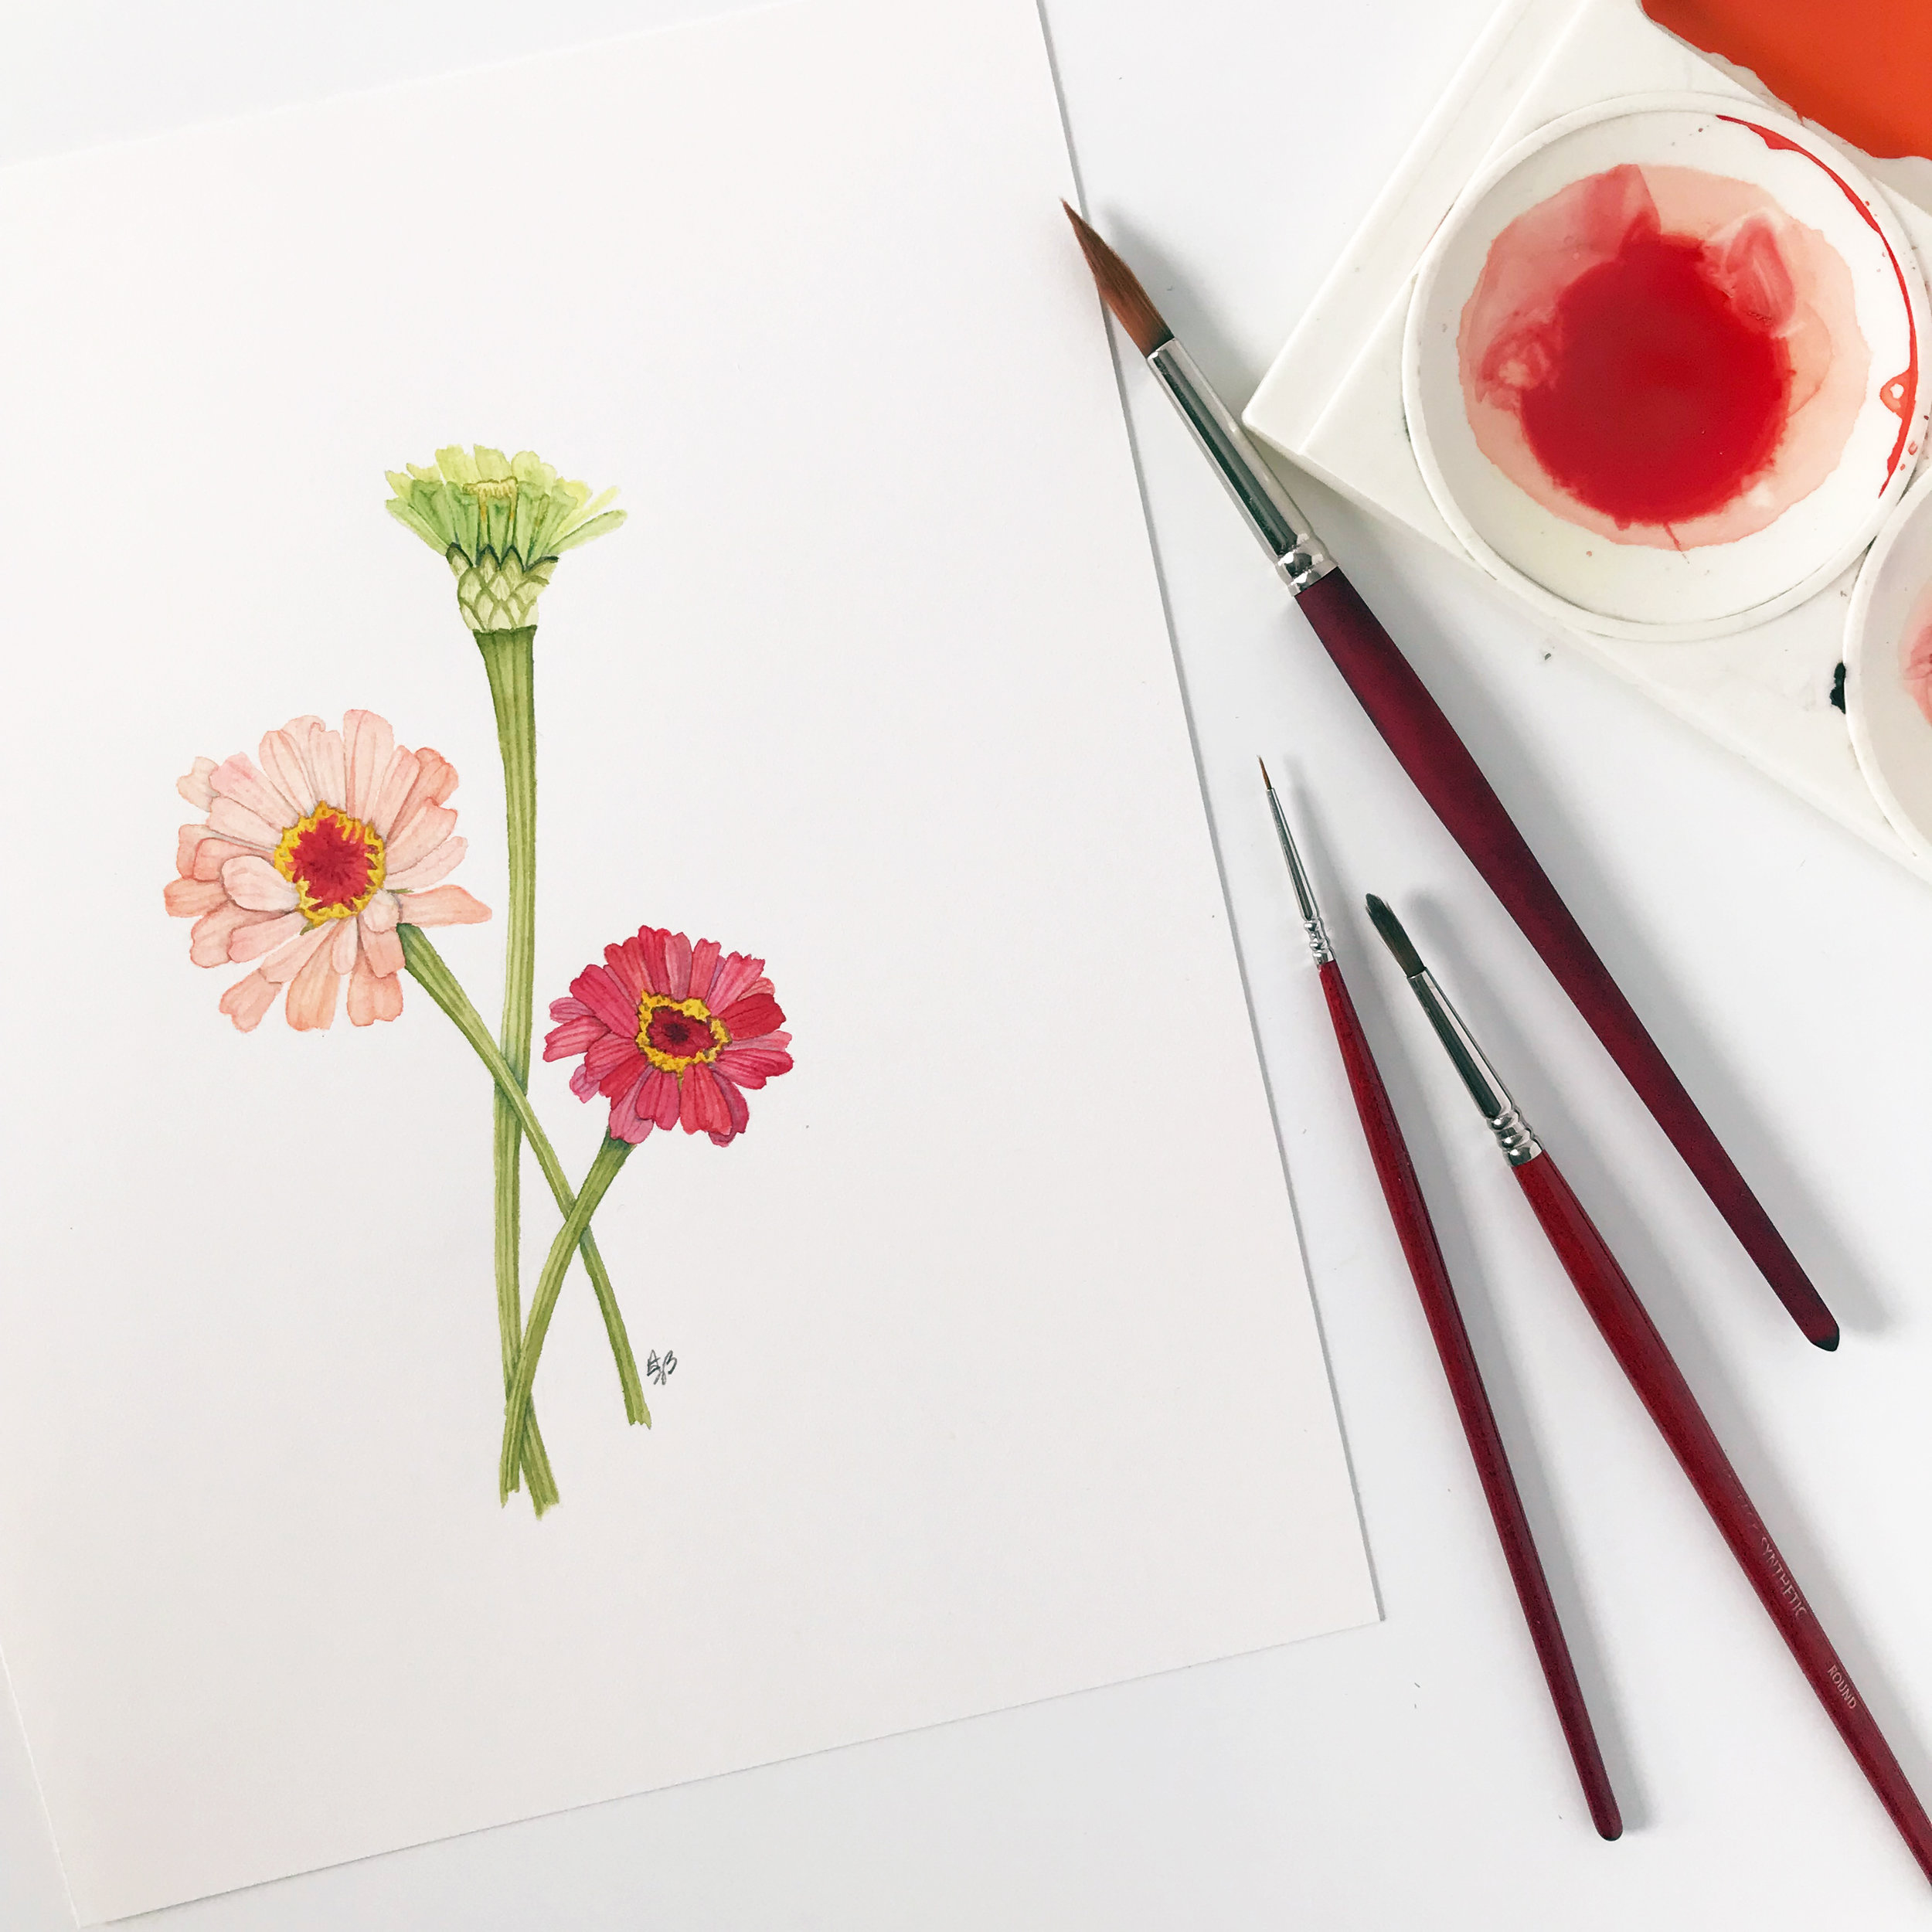 This new watercolor painting of three zinnia flowers is now available in my shop